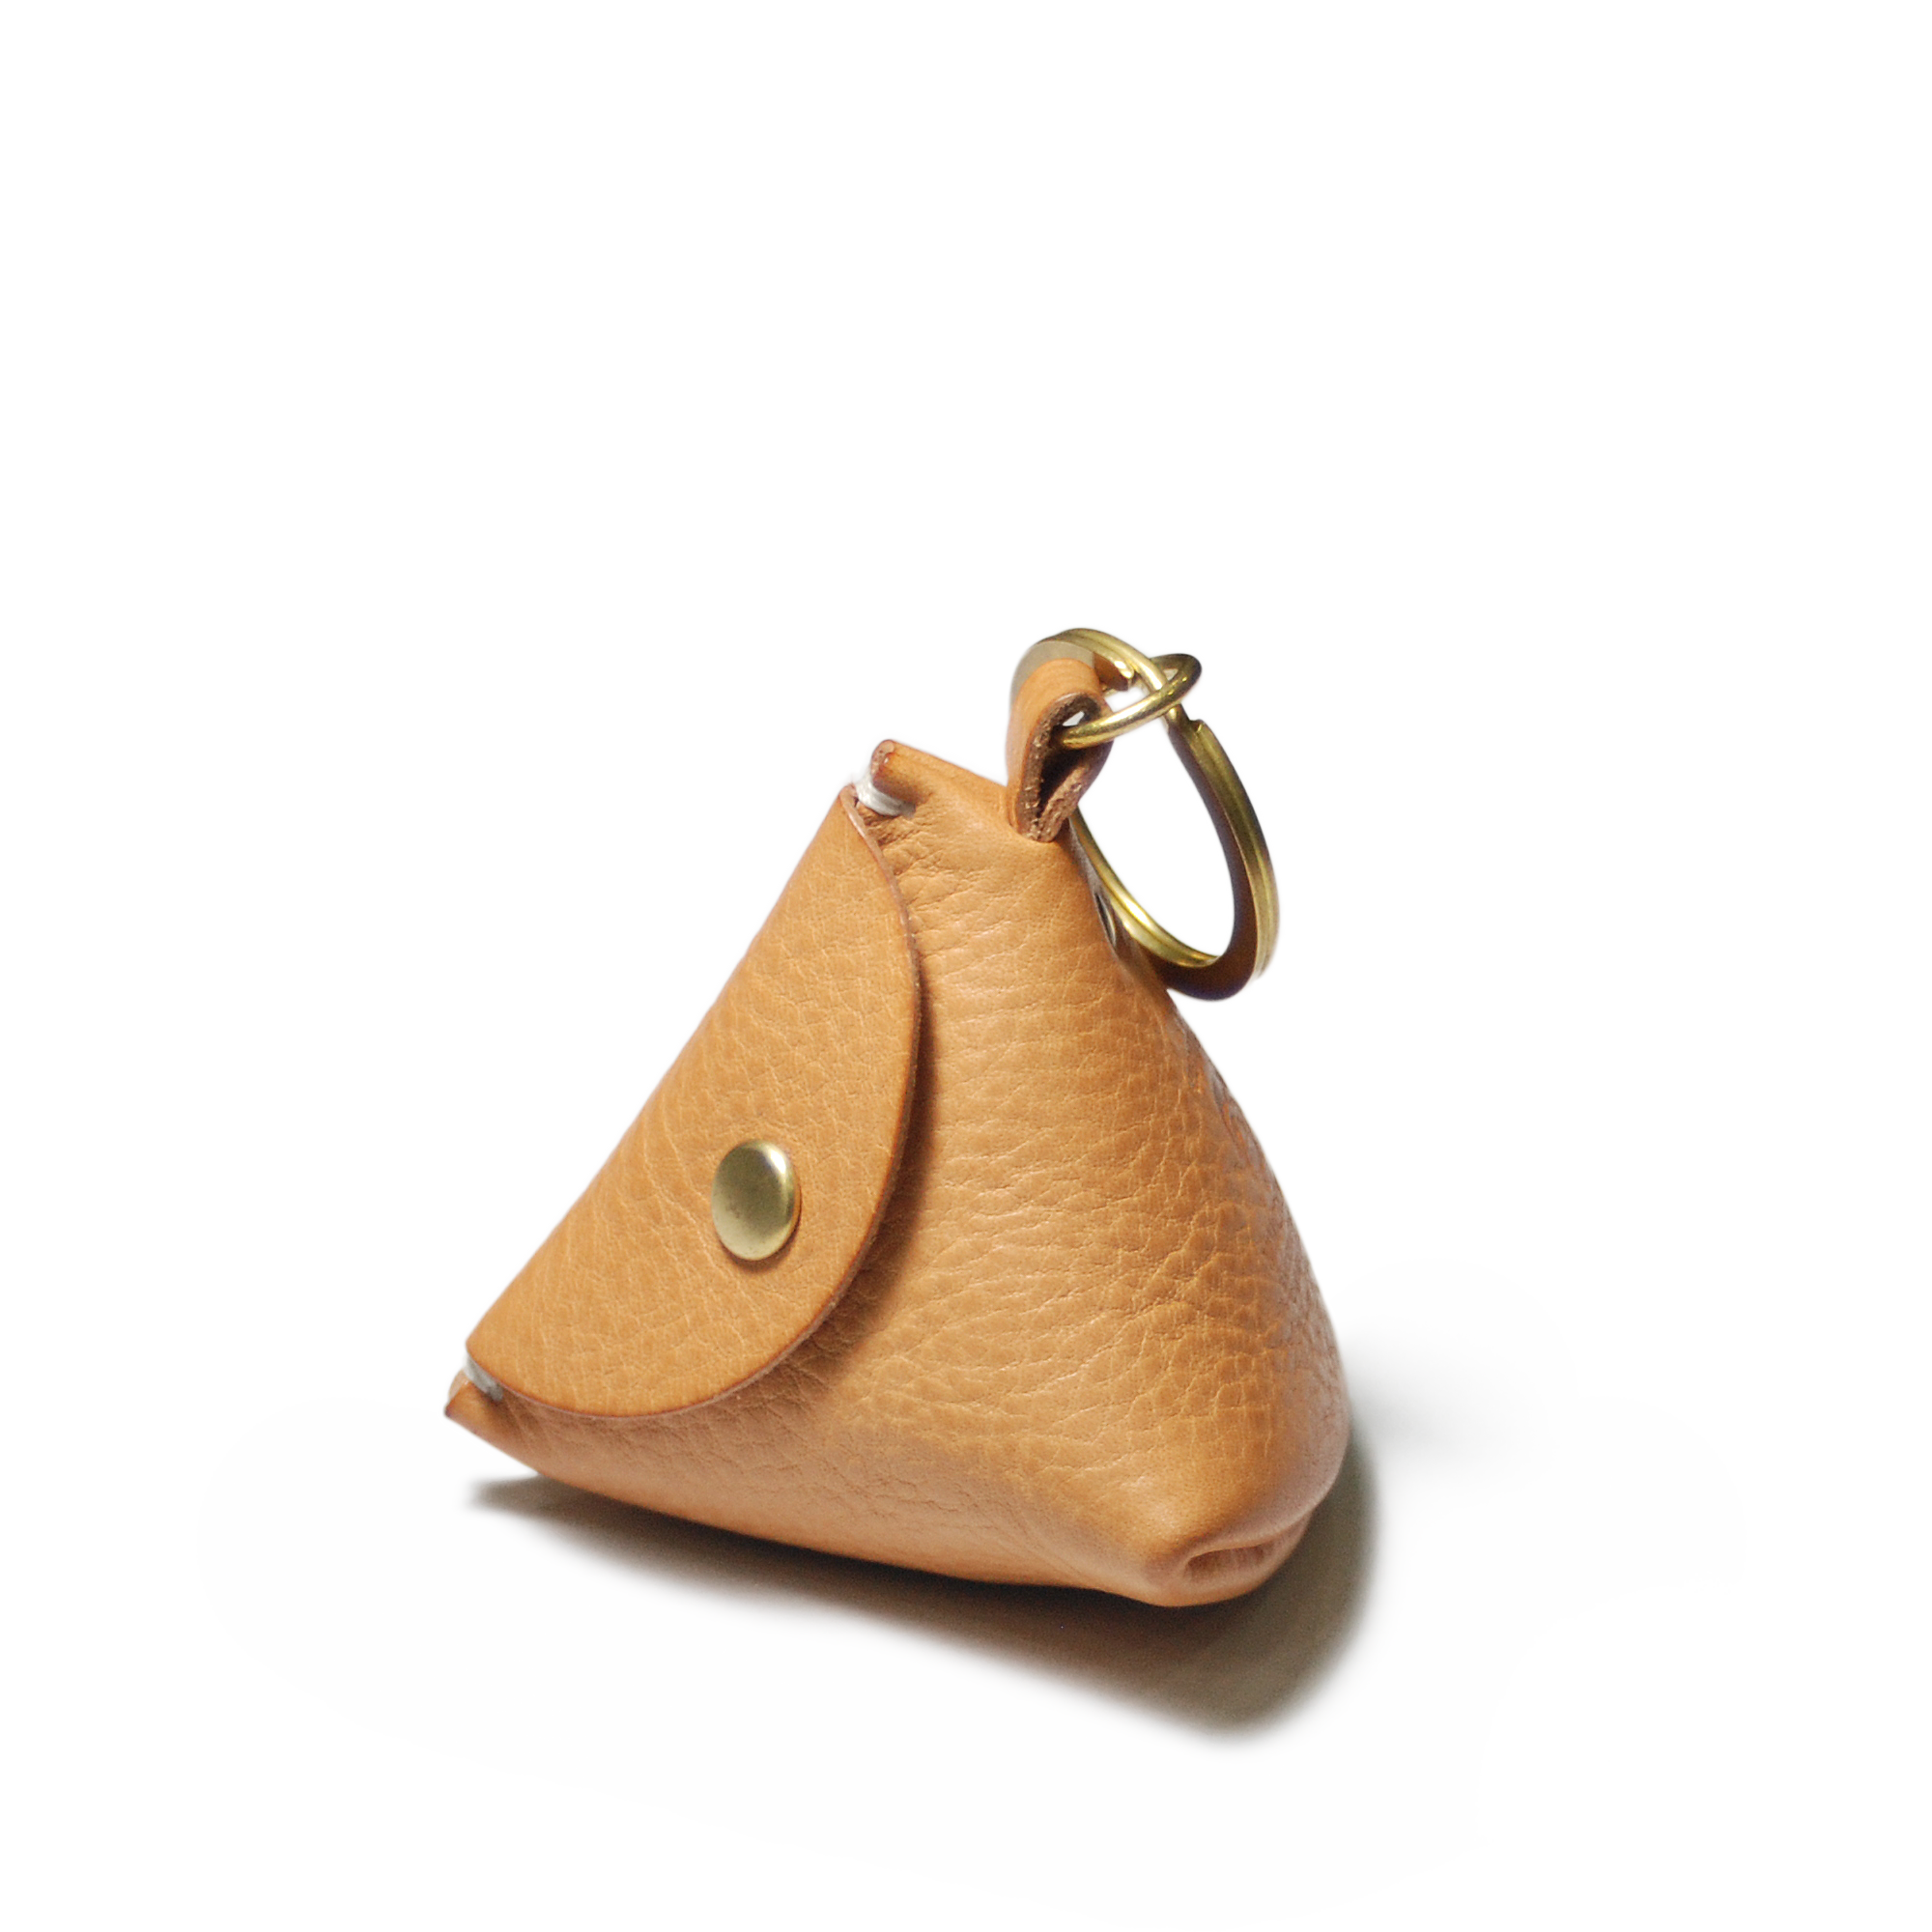 [MIMI CROW] Coin pouch_ Tetrahedron